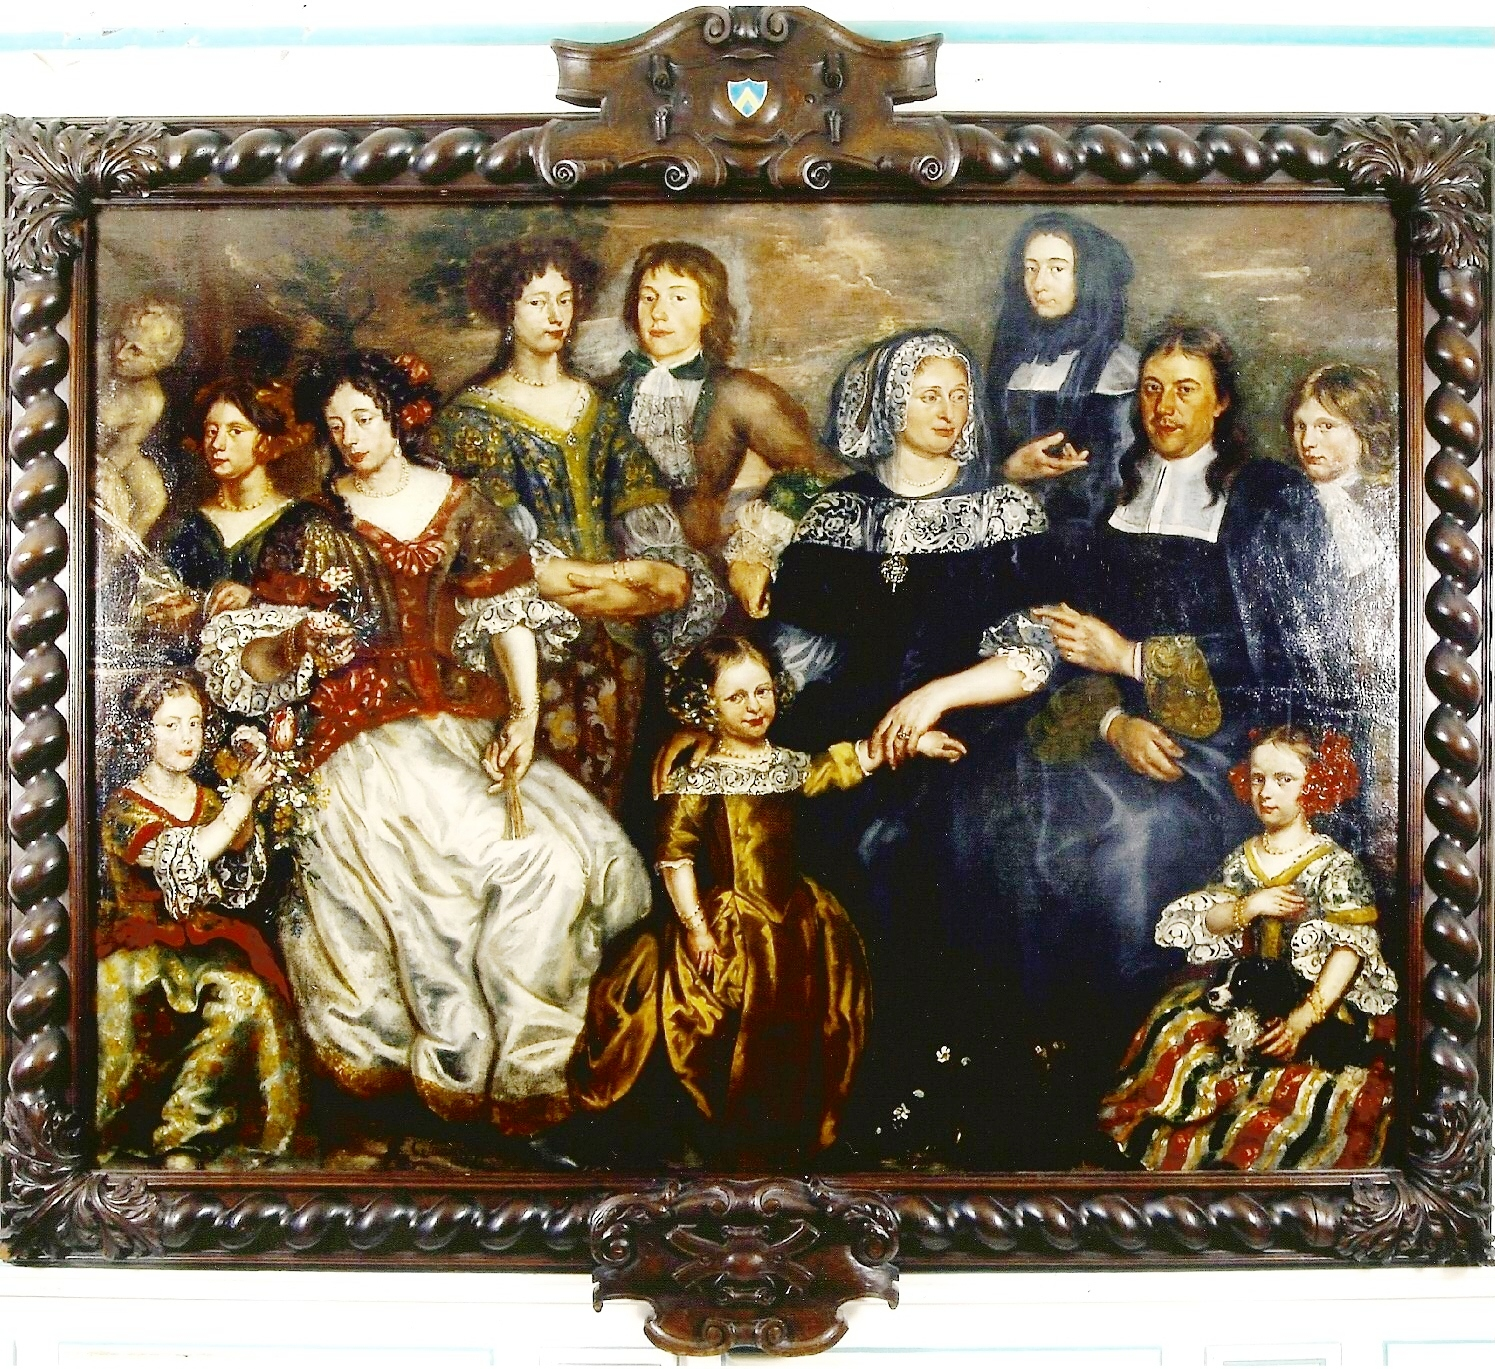 Famille-Carpentier-par-Jacobs-peintre-guilde-Anvers-date-1602